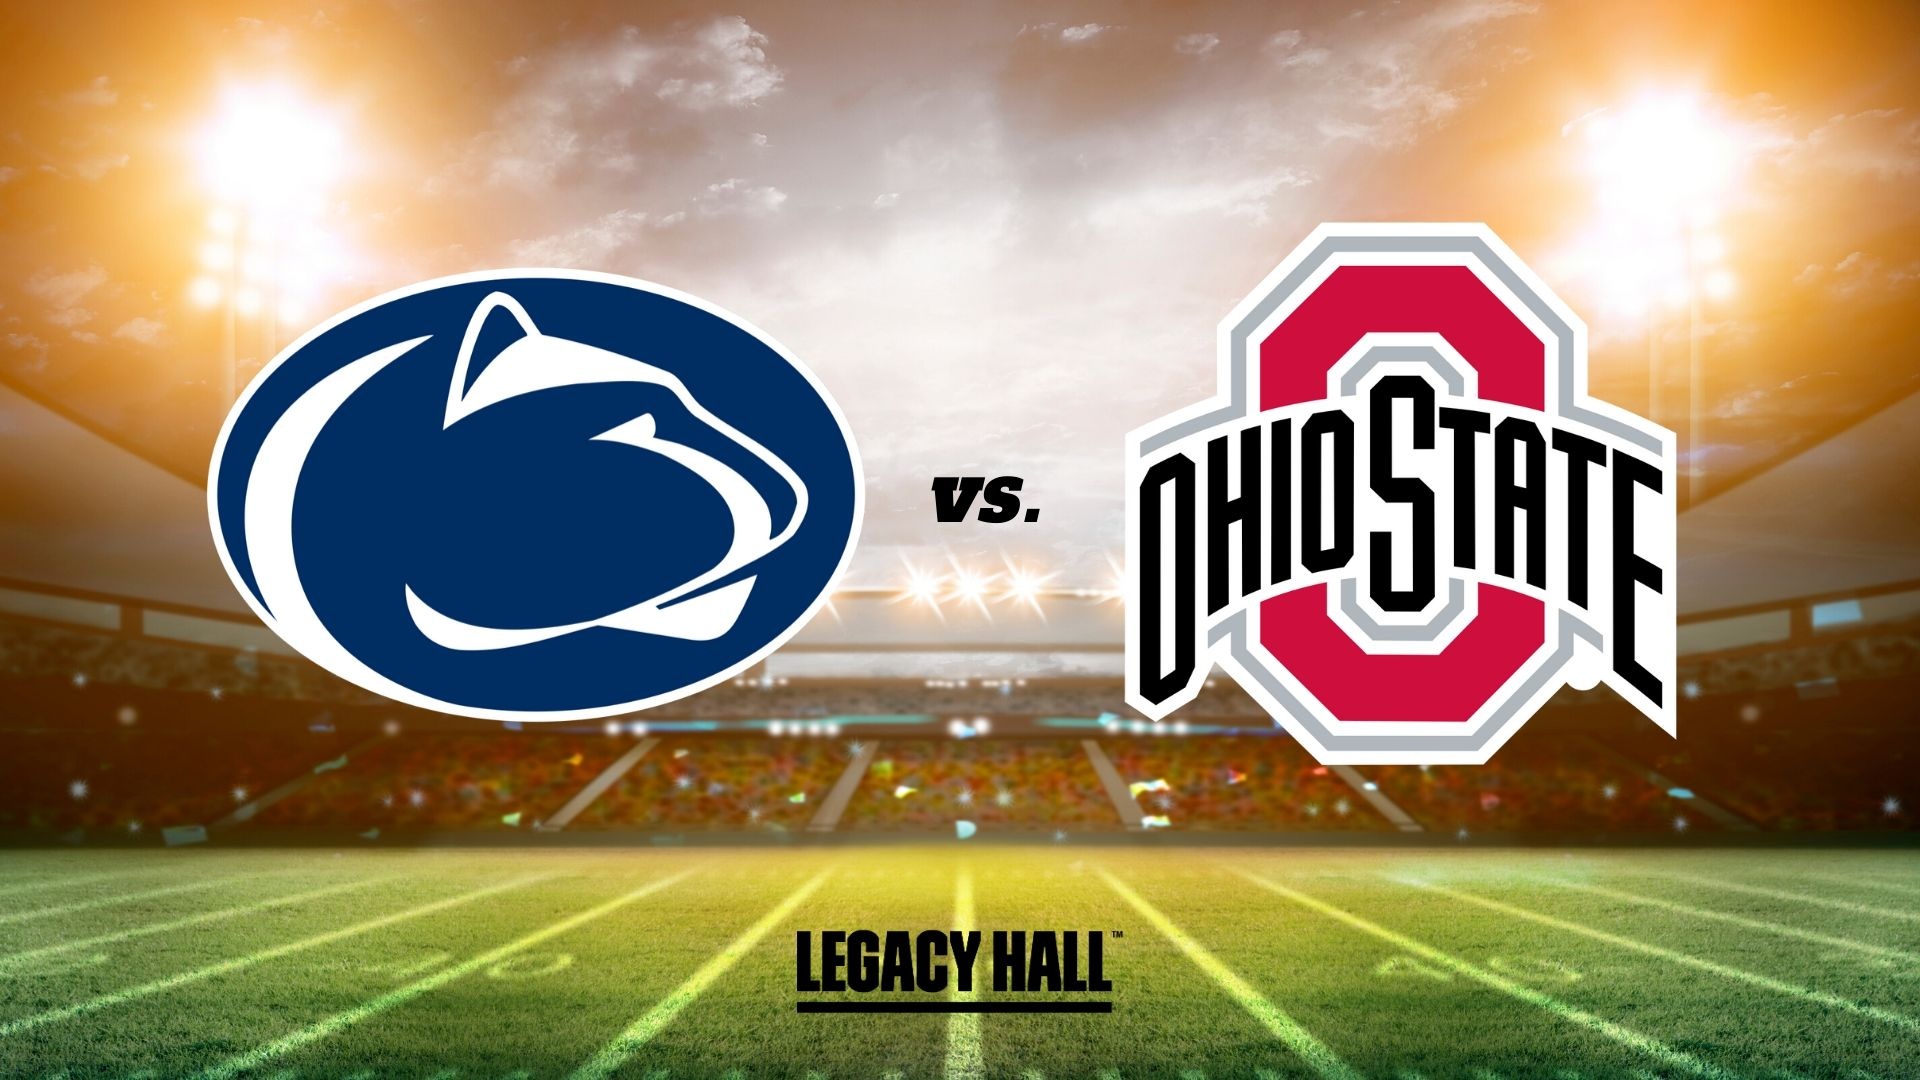 Penn State vs Ohio State Watch Party - hero